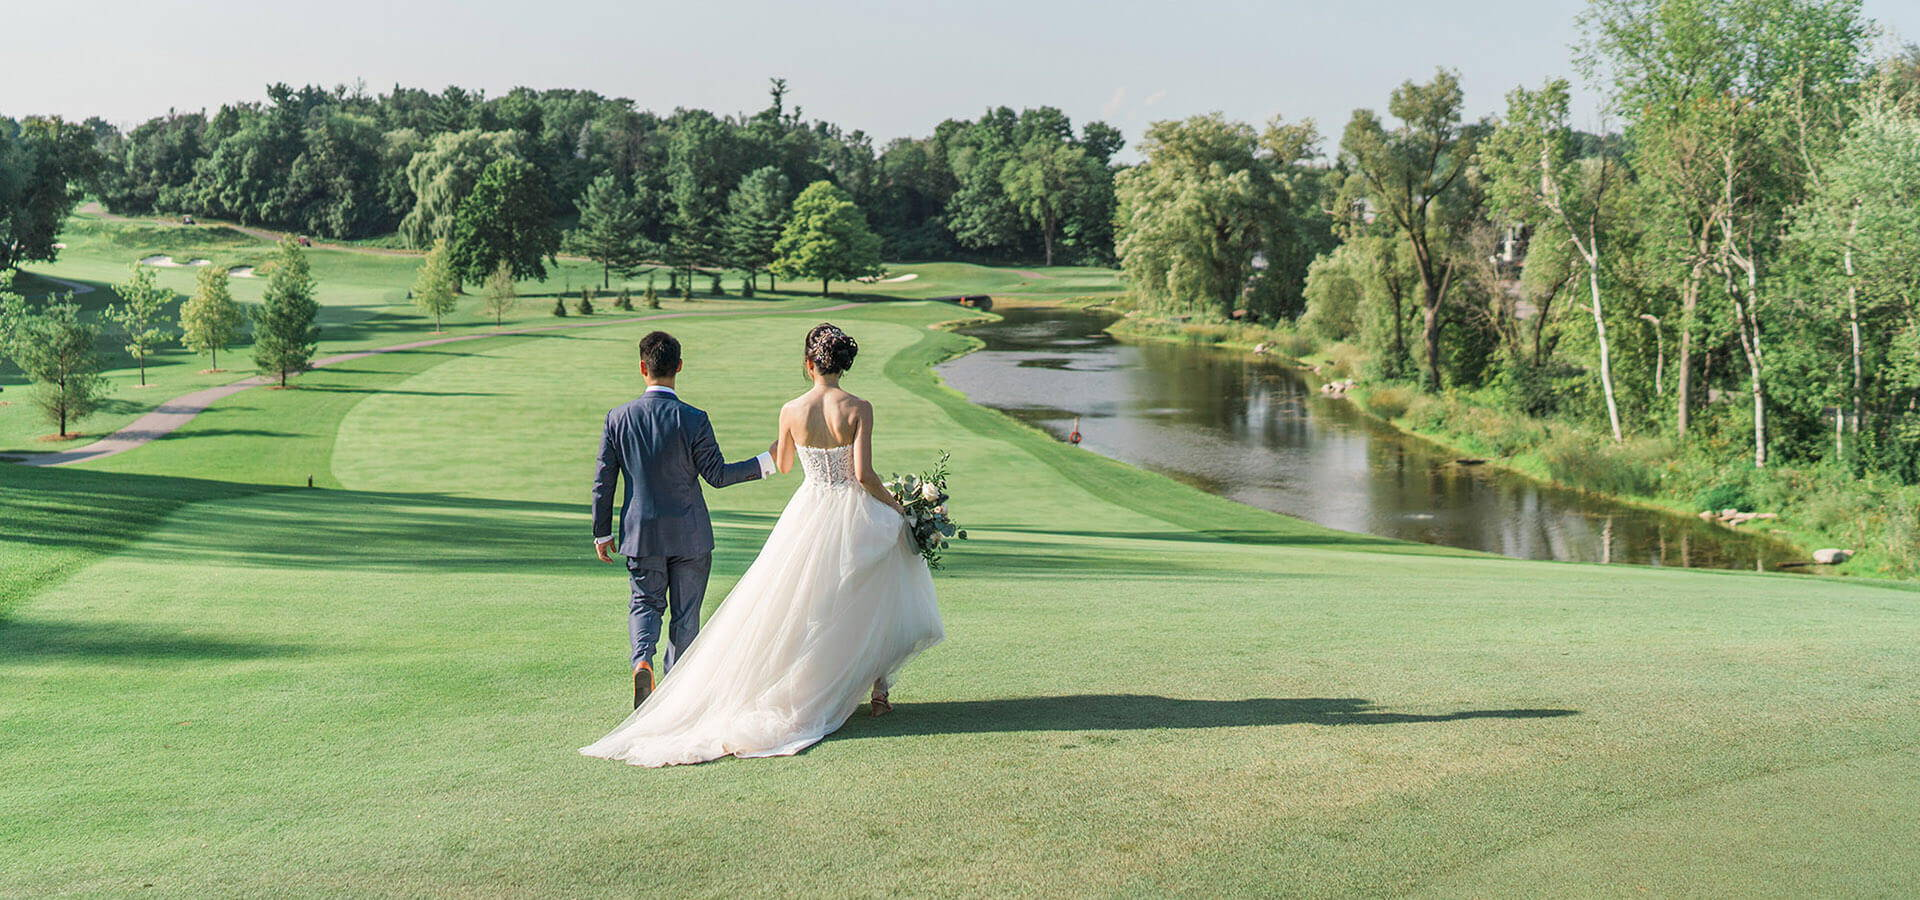 Hero image for Kimberly and Jonathan's Magical Wedding at the Bayview Golf and Country Club